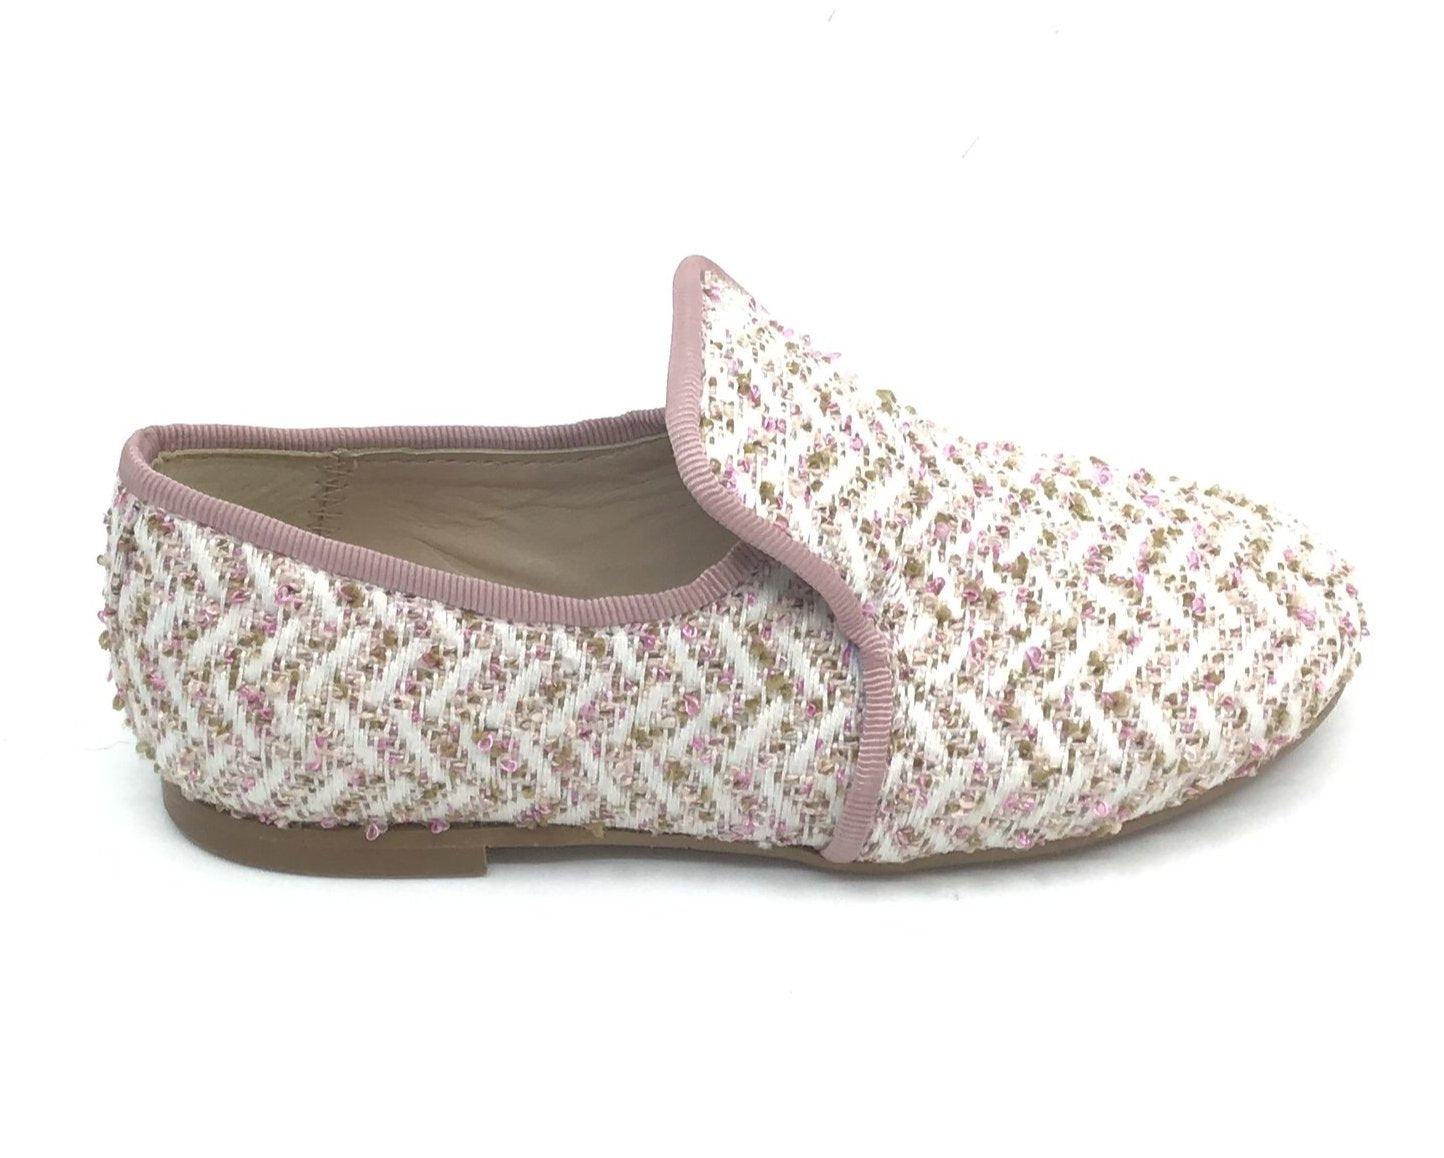 Papanatas Rose/Multi Color Weave Loafer